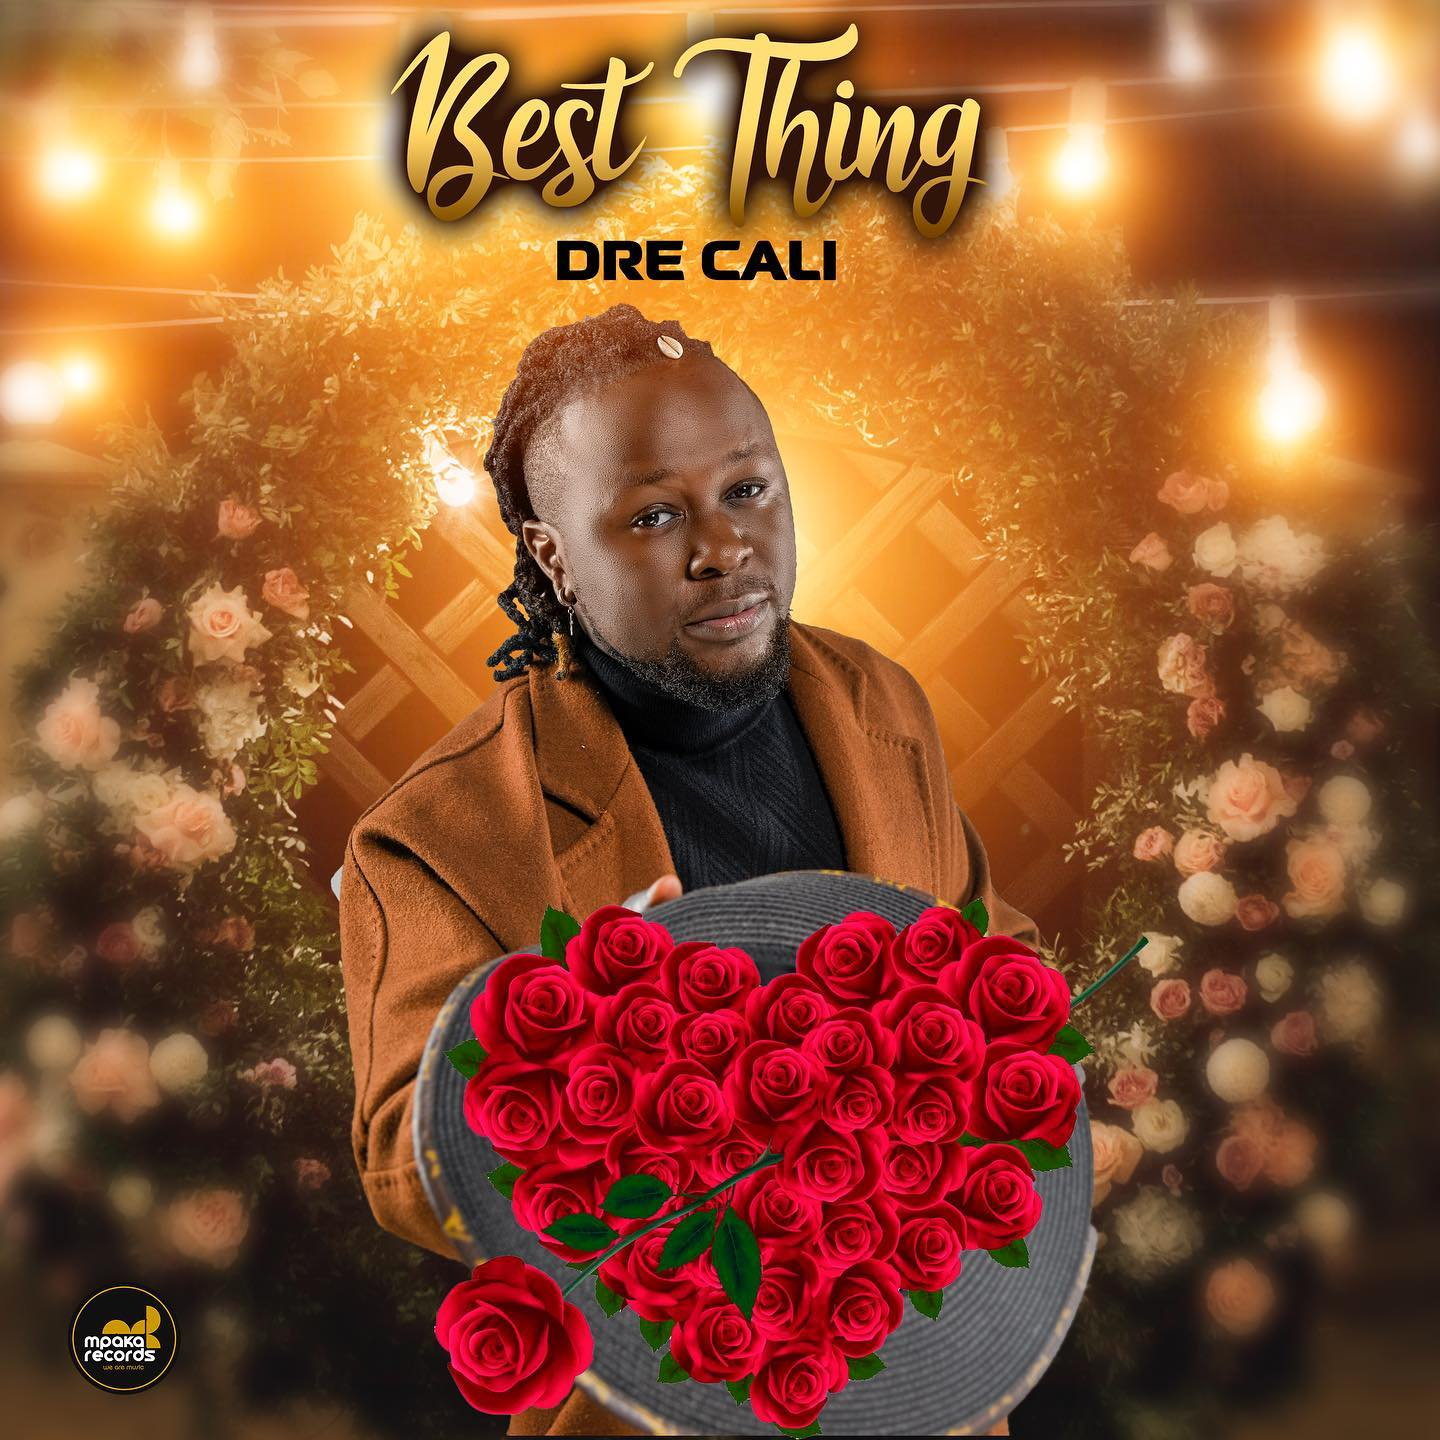 Best Thing by Dre Cali free mp3 Download - New Music 2021